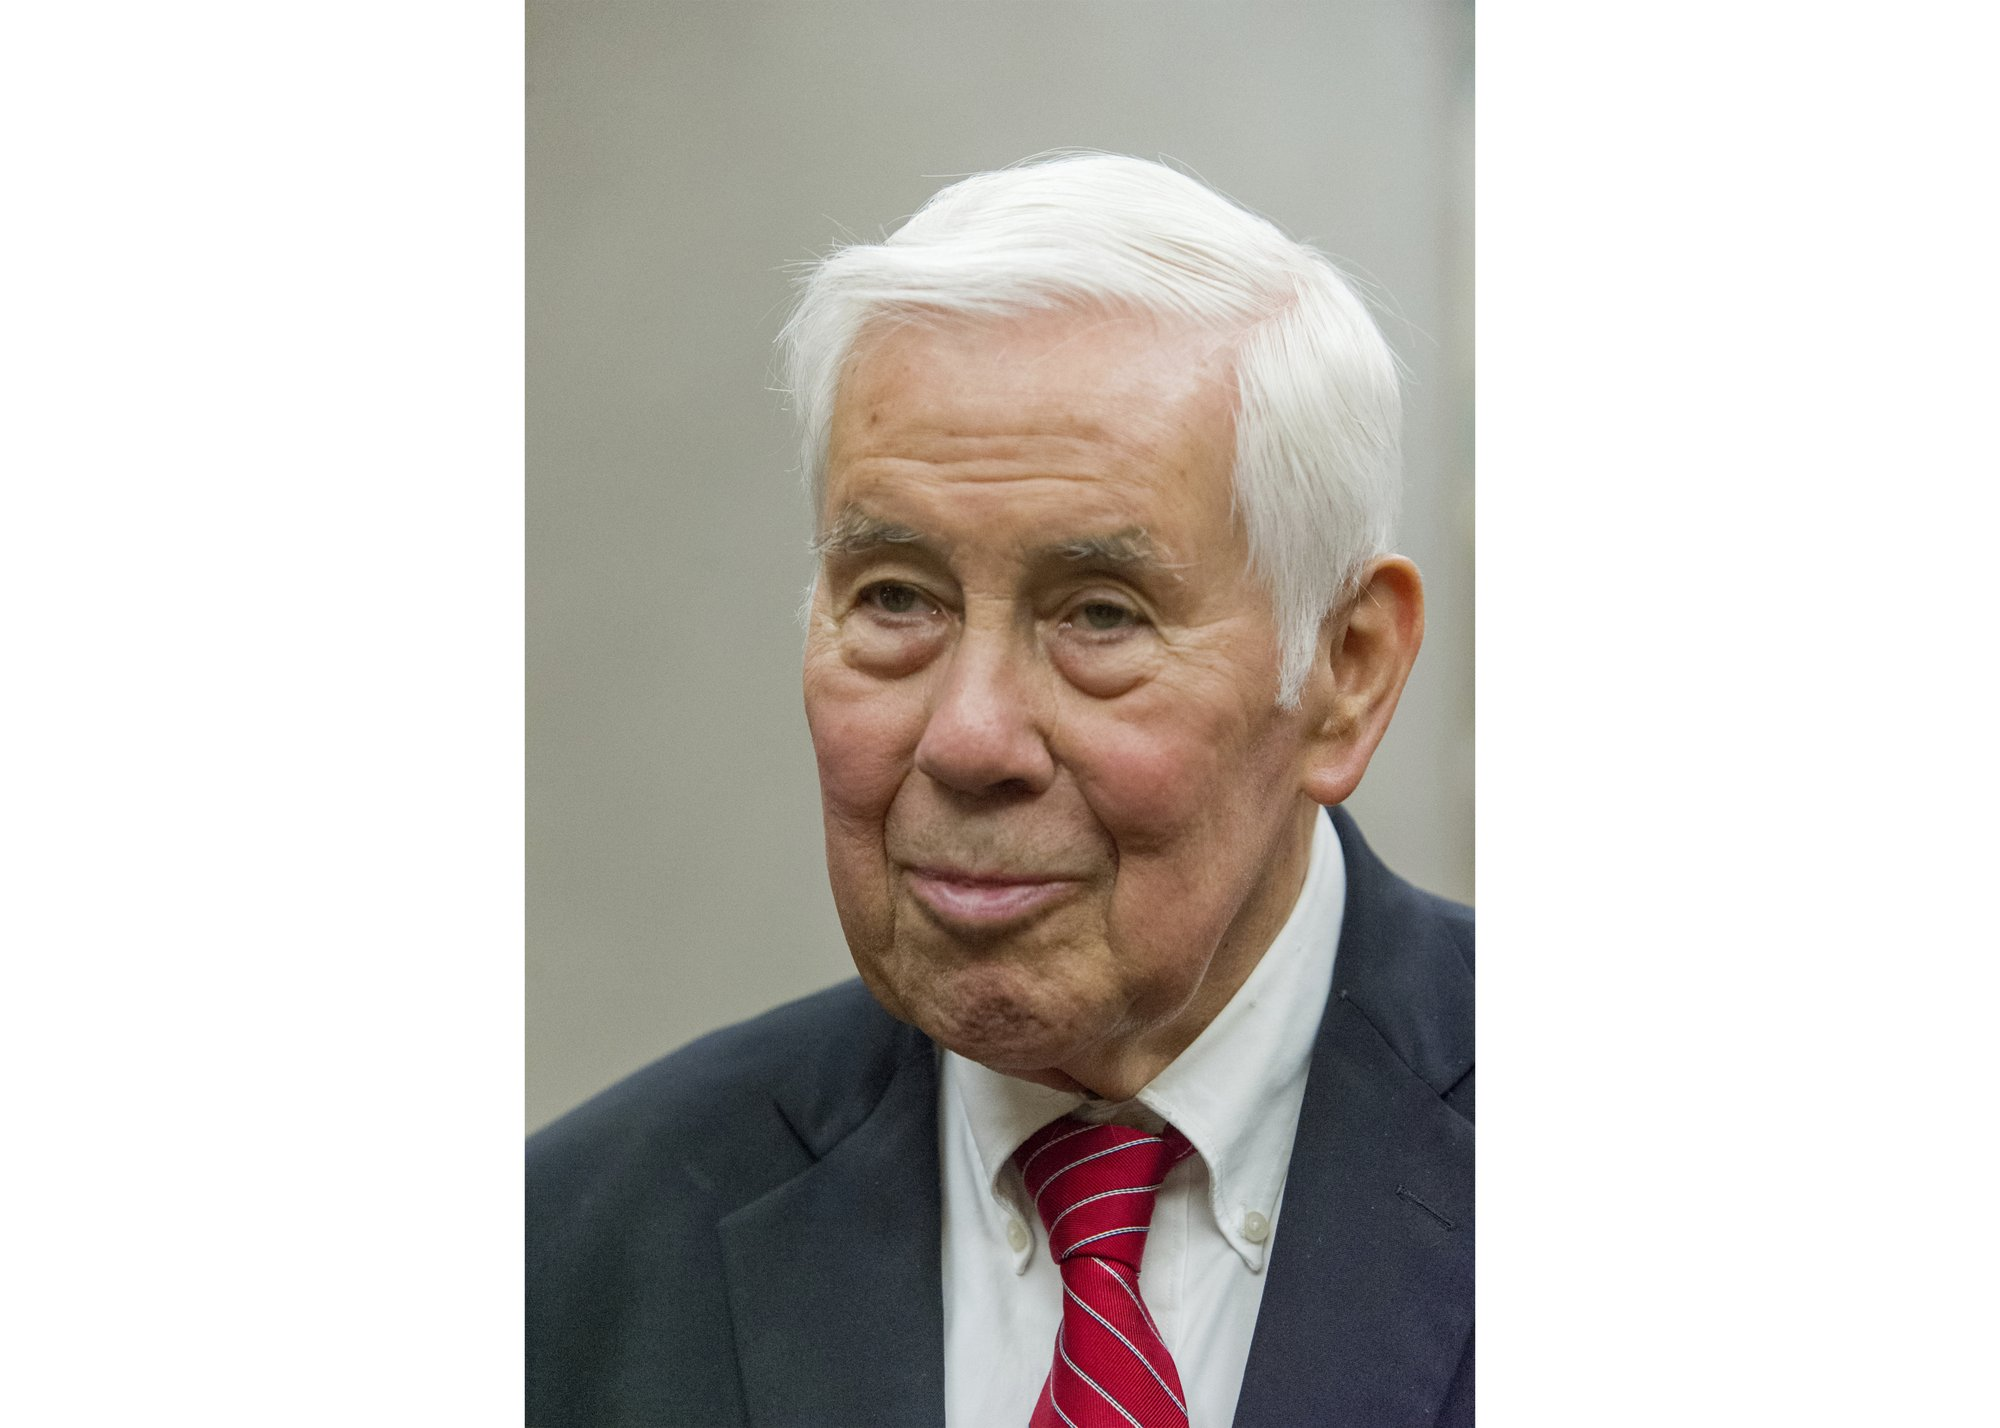 Former GOP Indiana Sen. Richard Lugar dies at 87